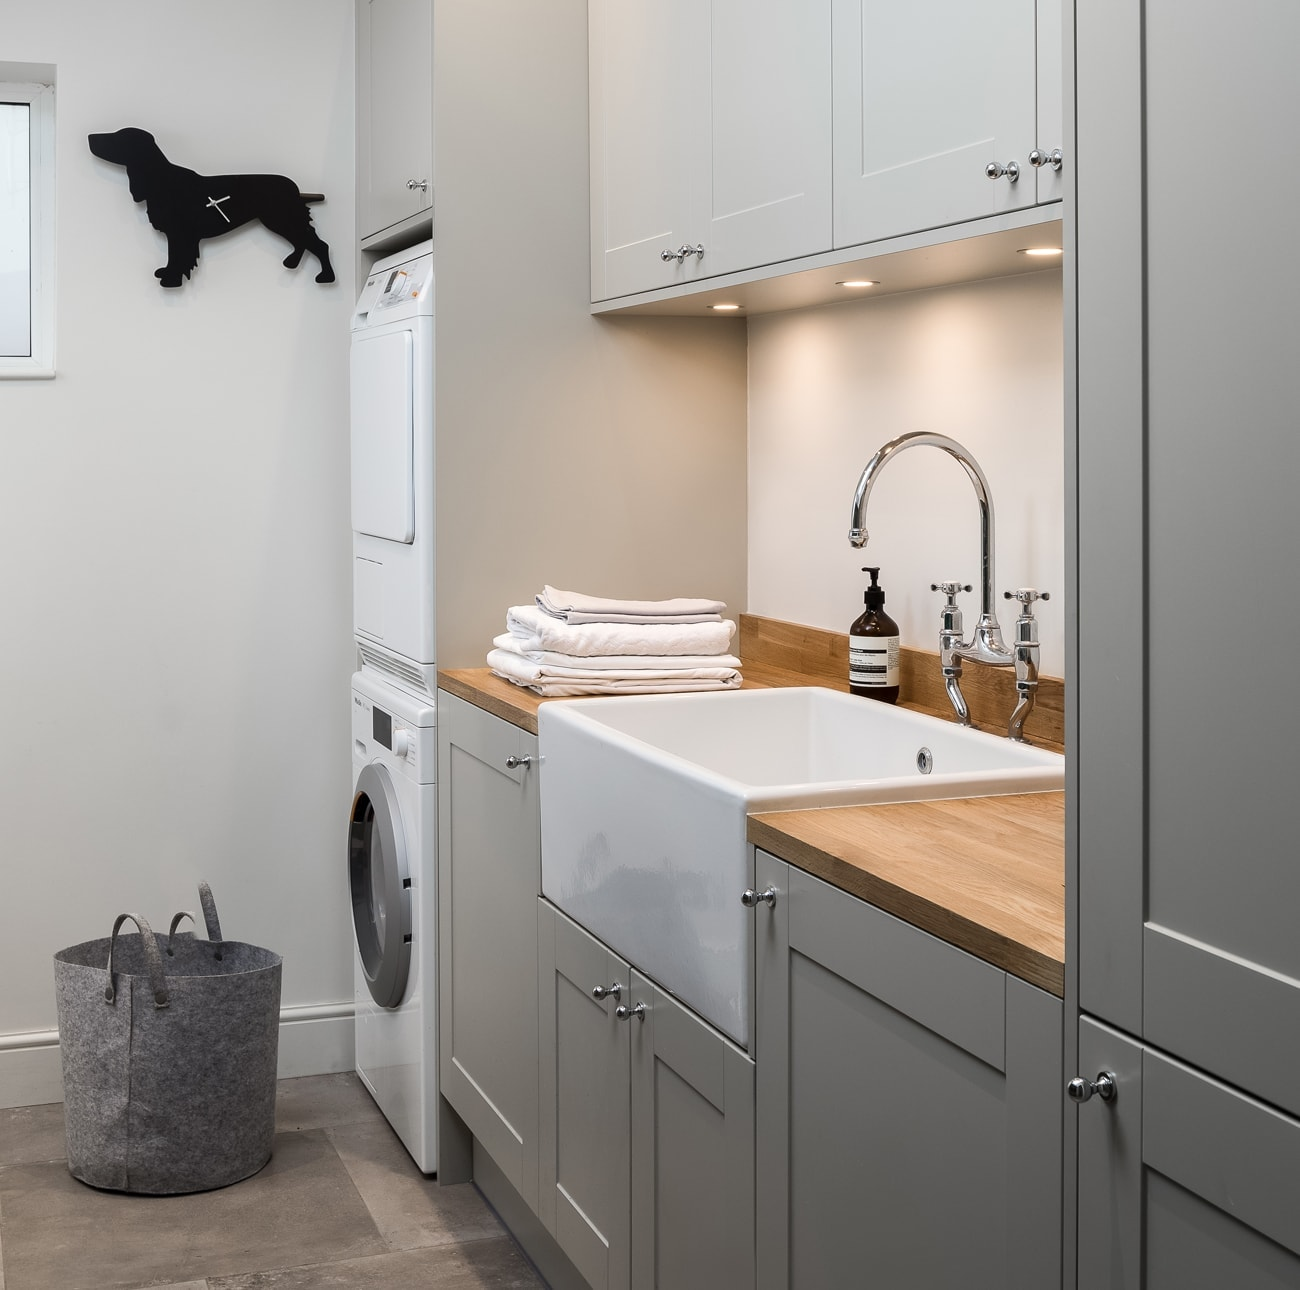 Grey and wood utility room concept